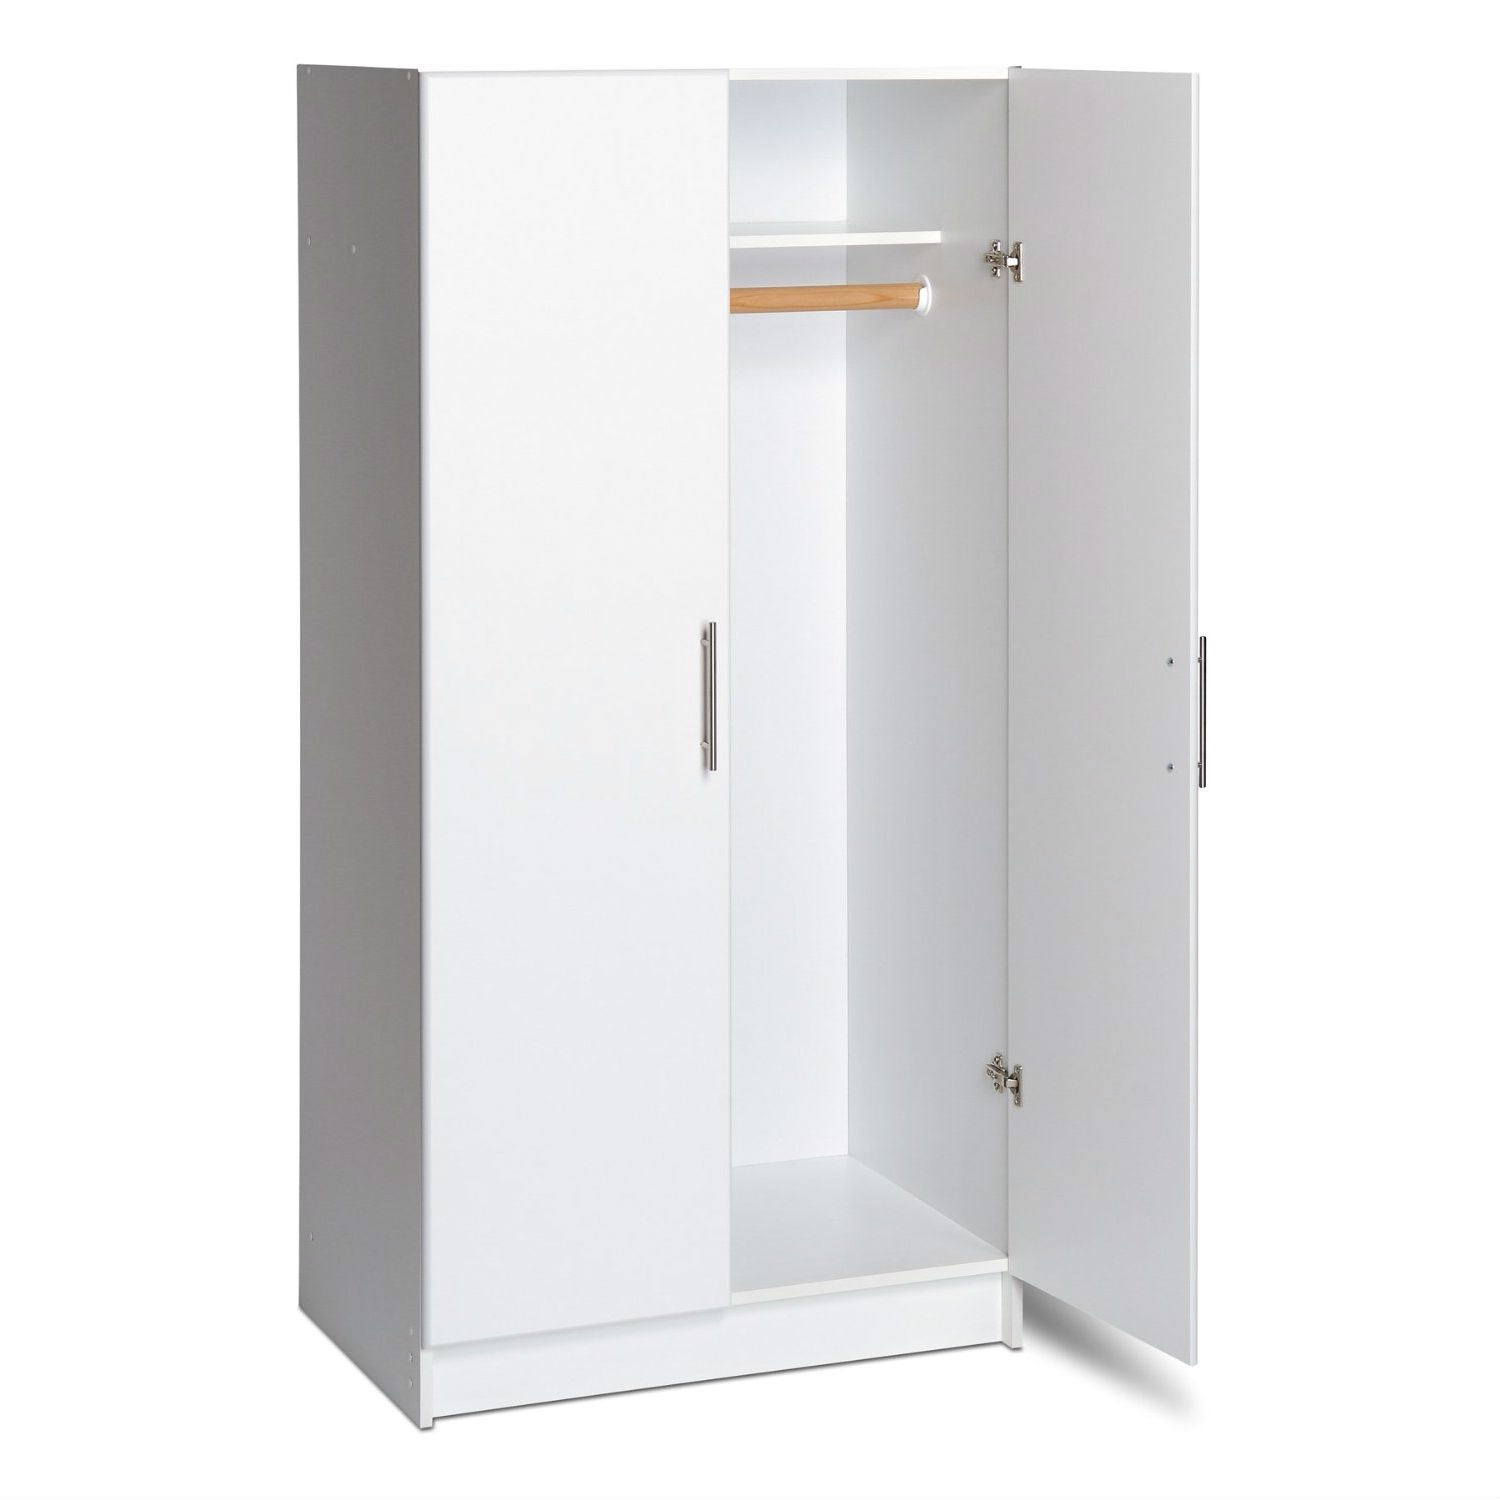 "This White 2-Door Wardrobe Cabinet with Hanging Rail and Storage Shelf includes one hanging rail for clothes as well as a fixed top shelf for hats and other small items. Use alone or add the optional 32"" Topper for 89"" high storage. It's quality features include distinctive Soft Edged Doors, Designer Hardware, Attractive Finishes and European Style Hinges."